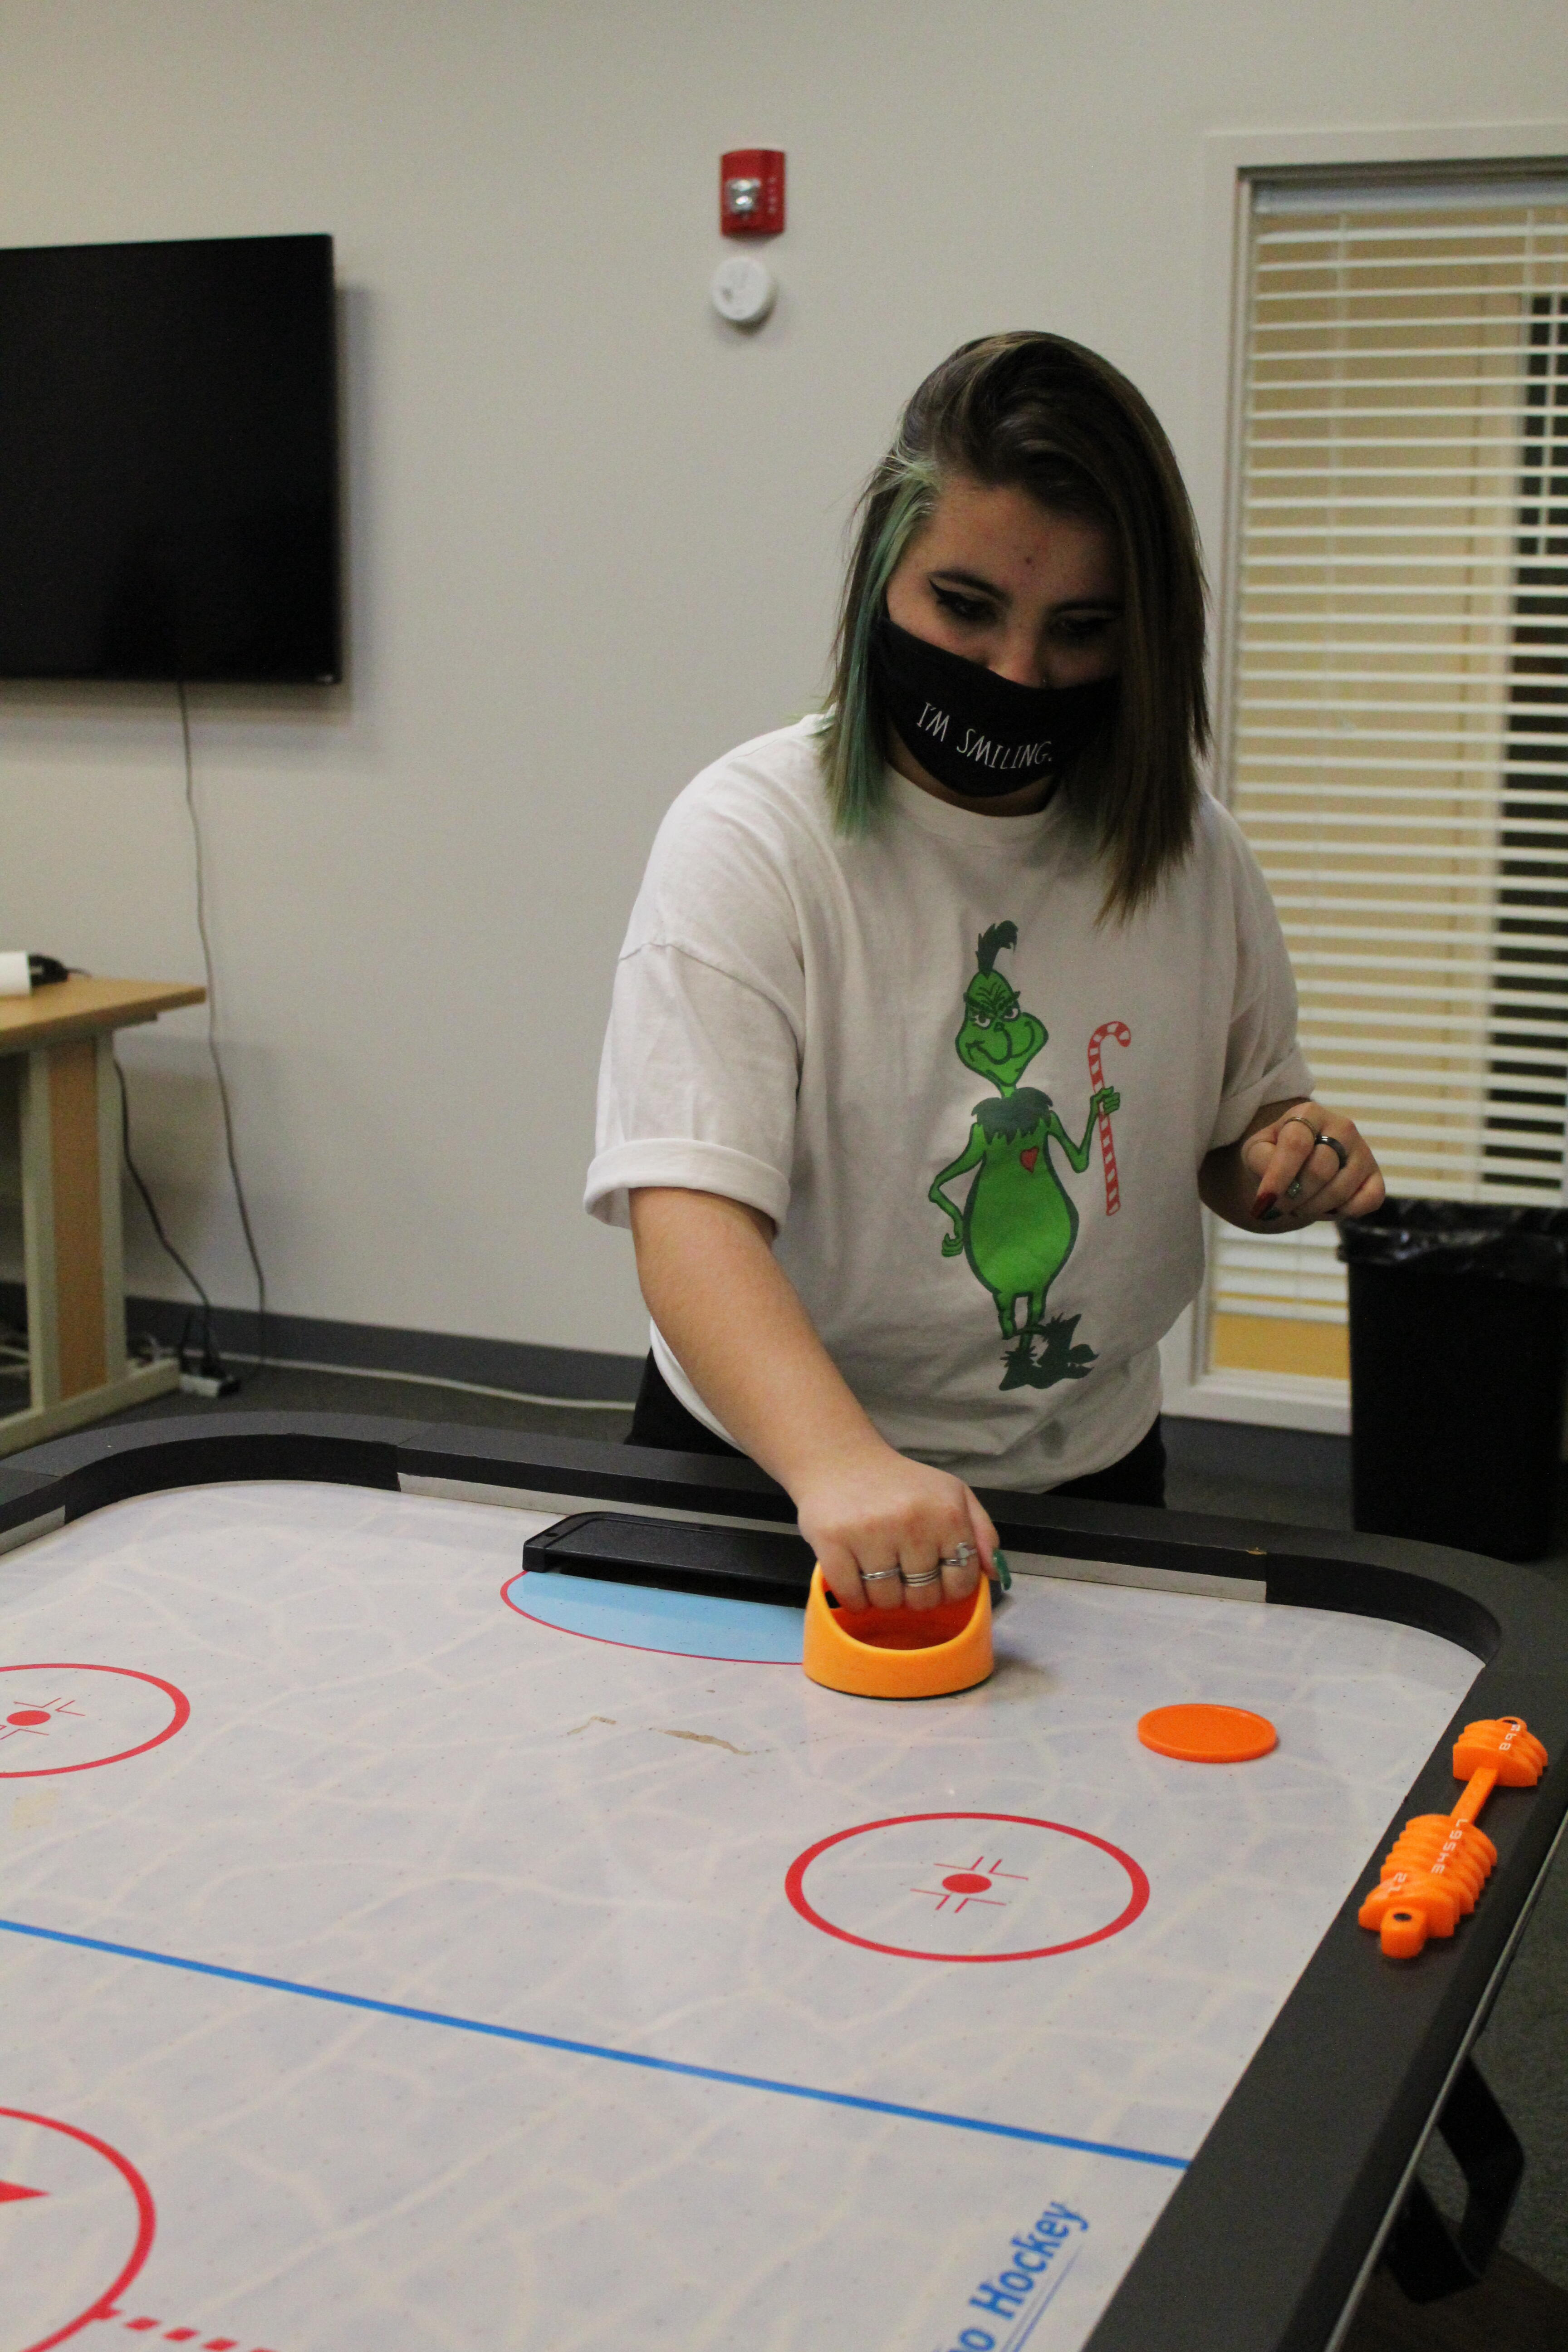 student playing a game